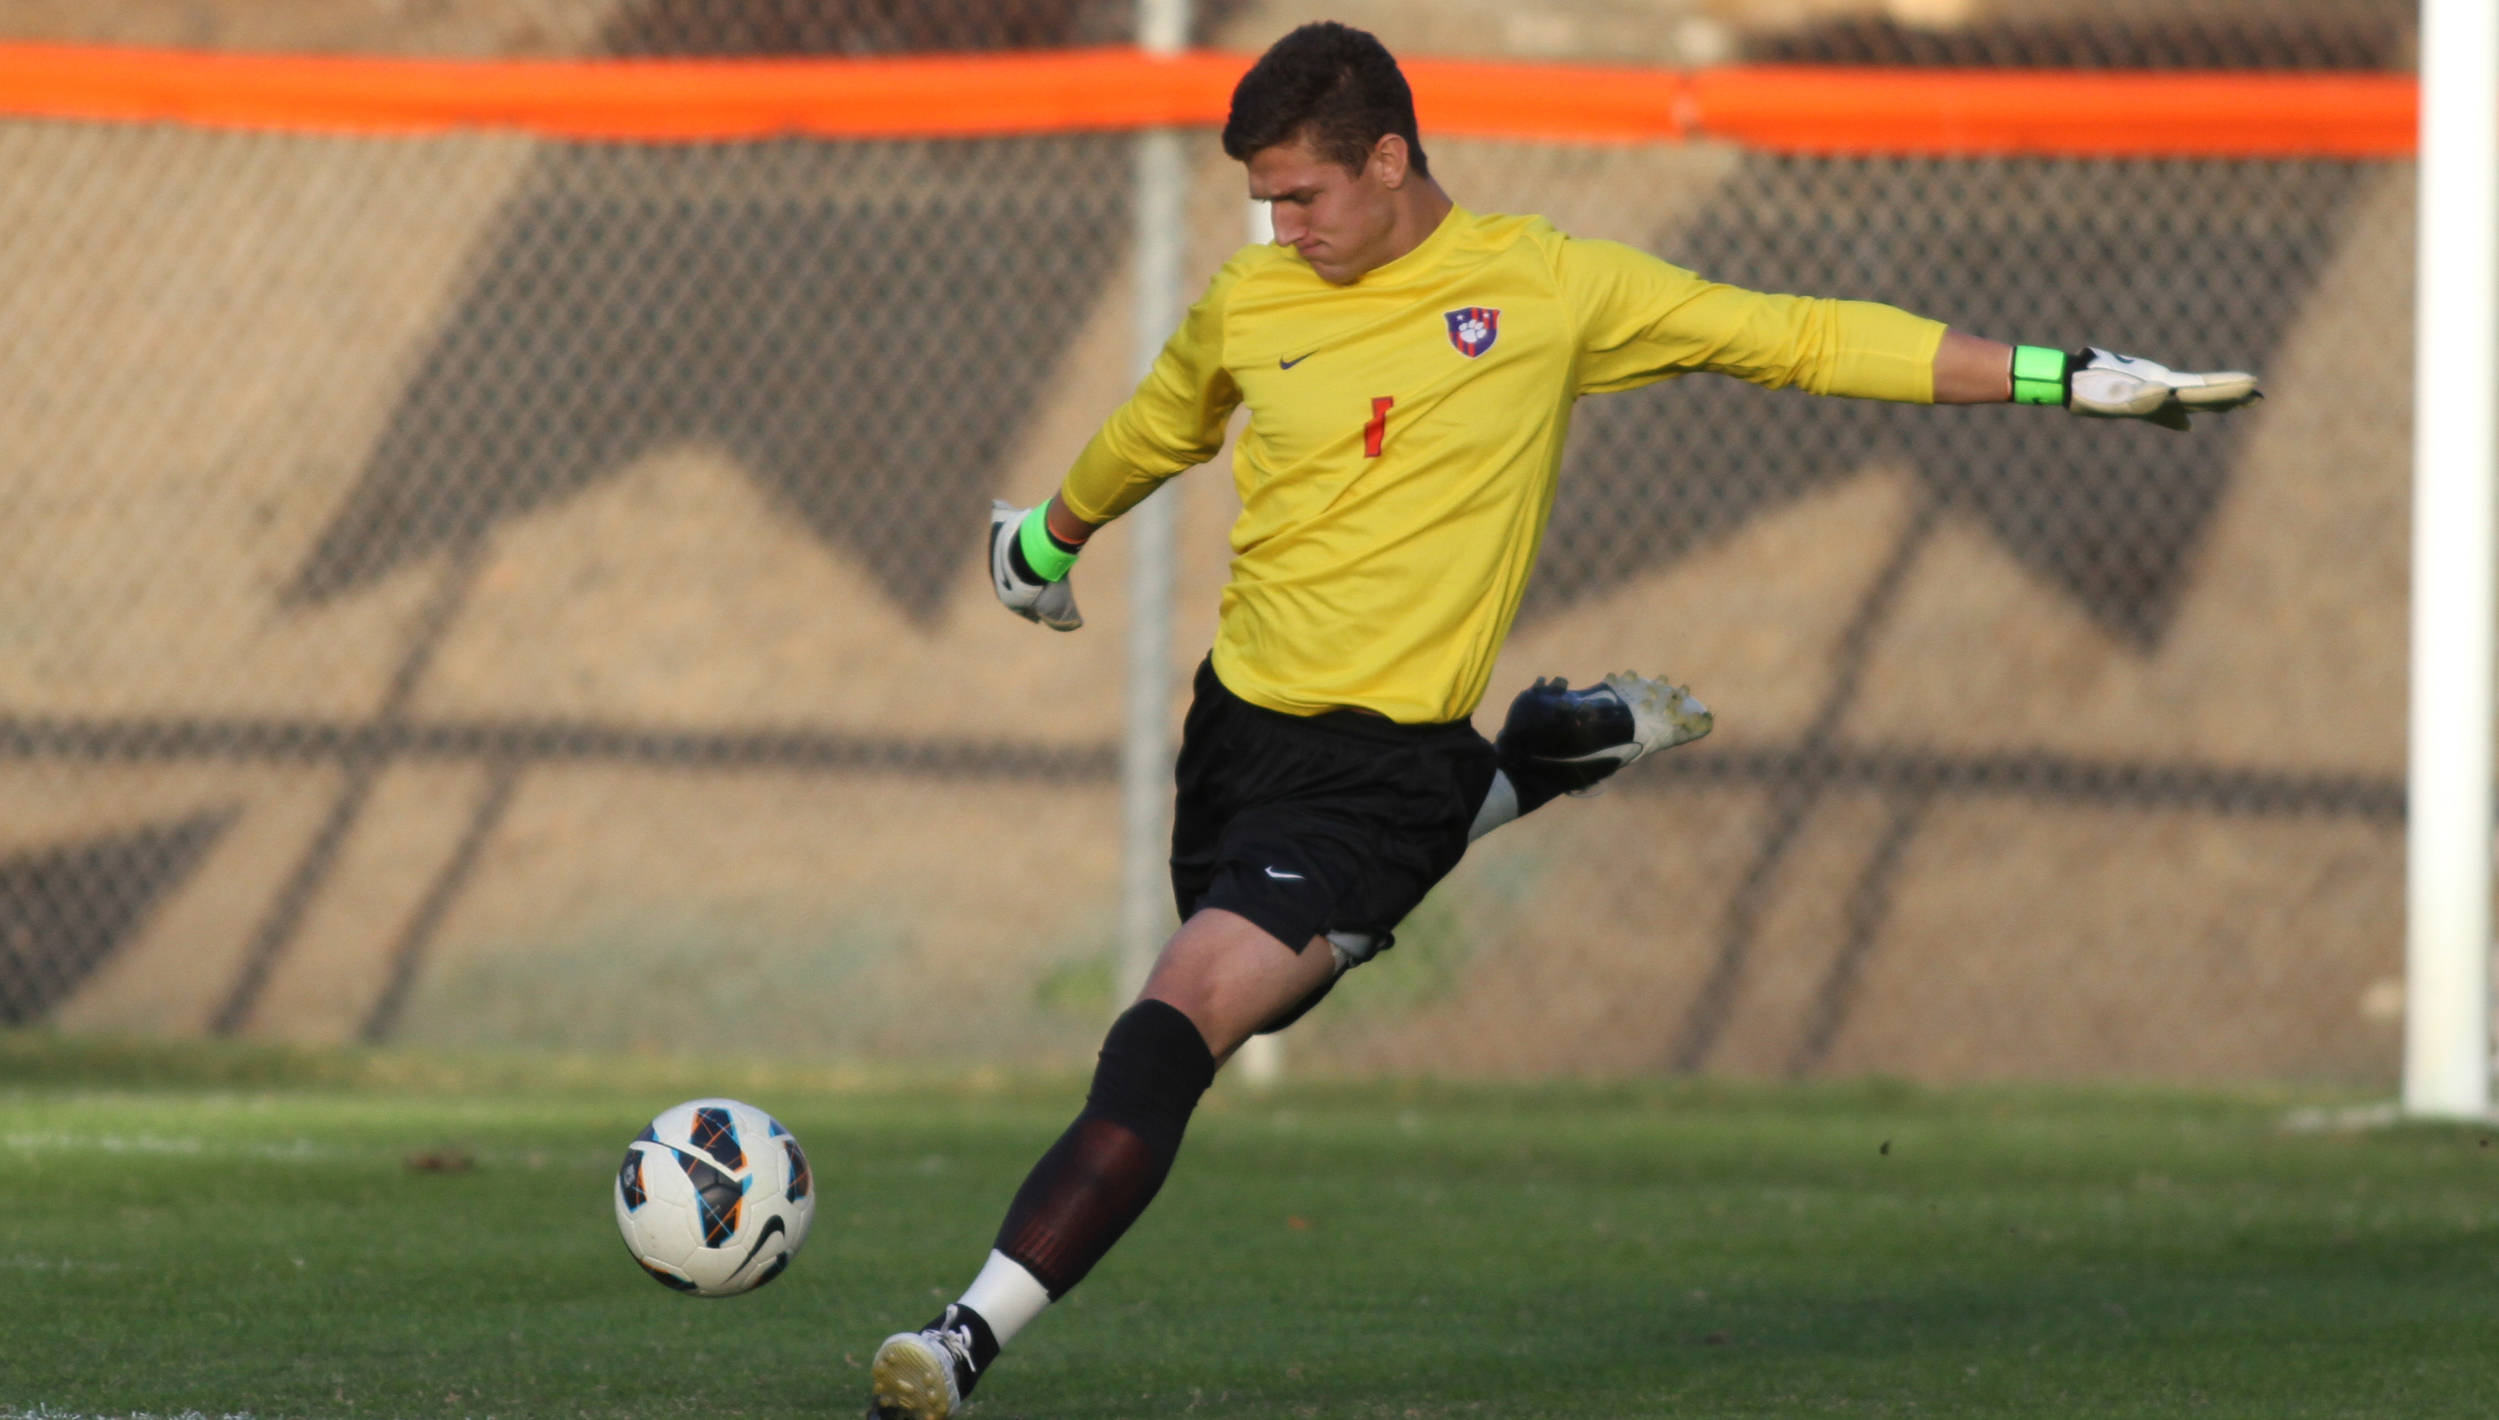 Clemson and #1-Ranked Maryland Play to a 2-2 Draw